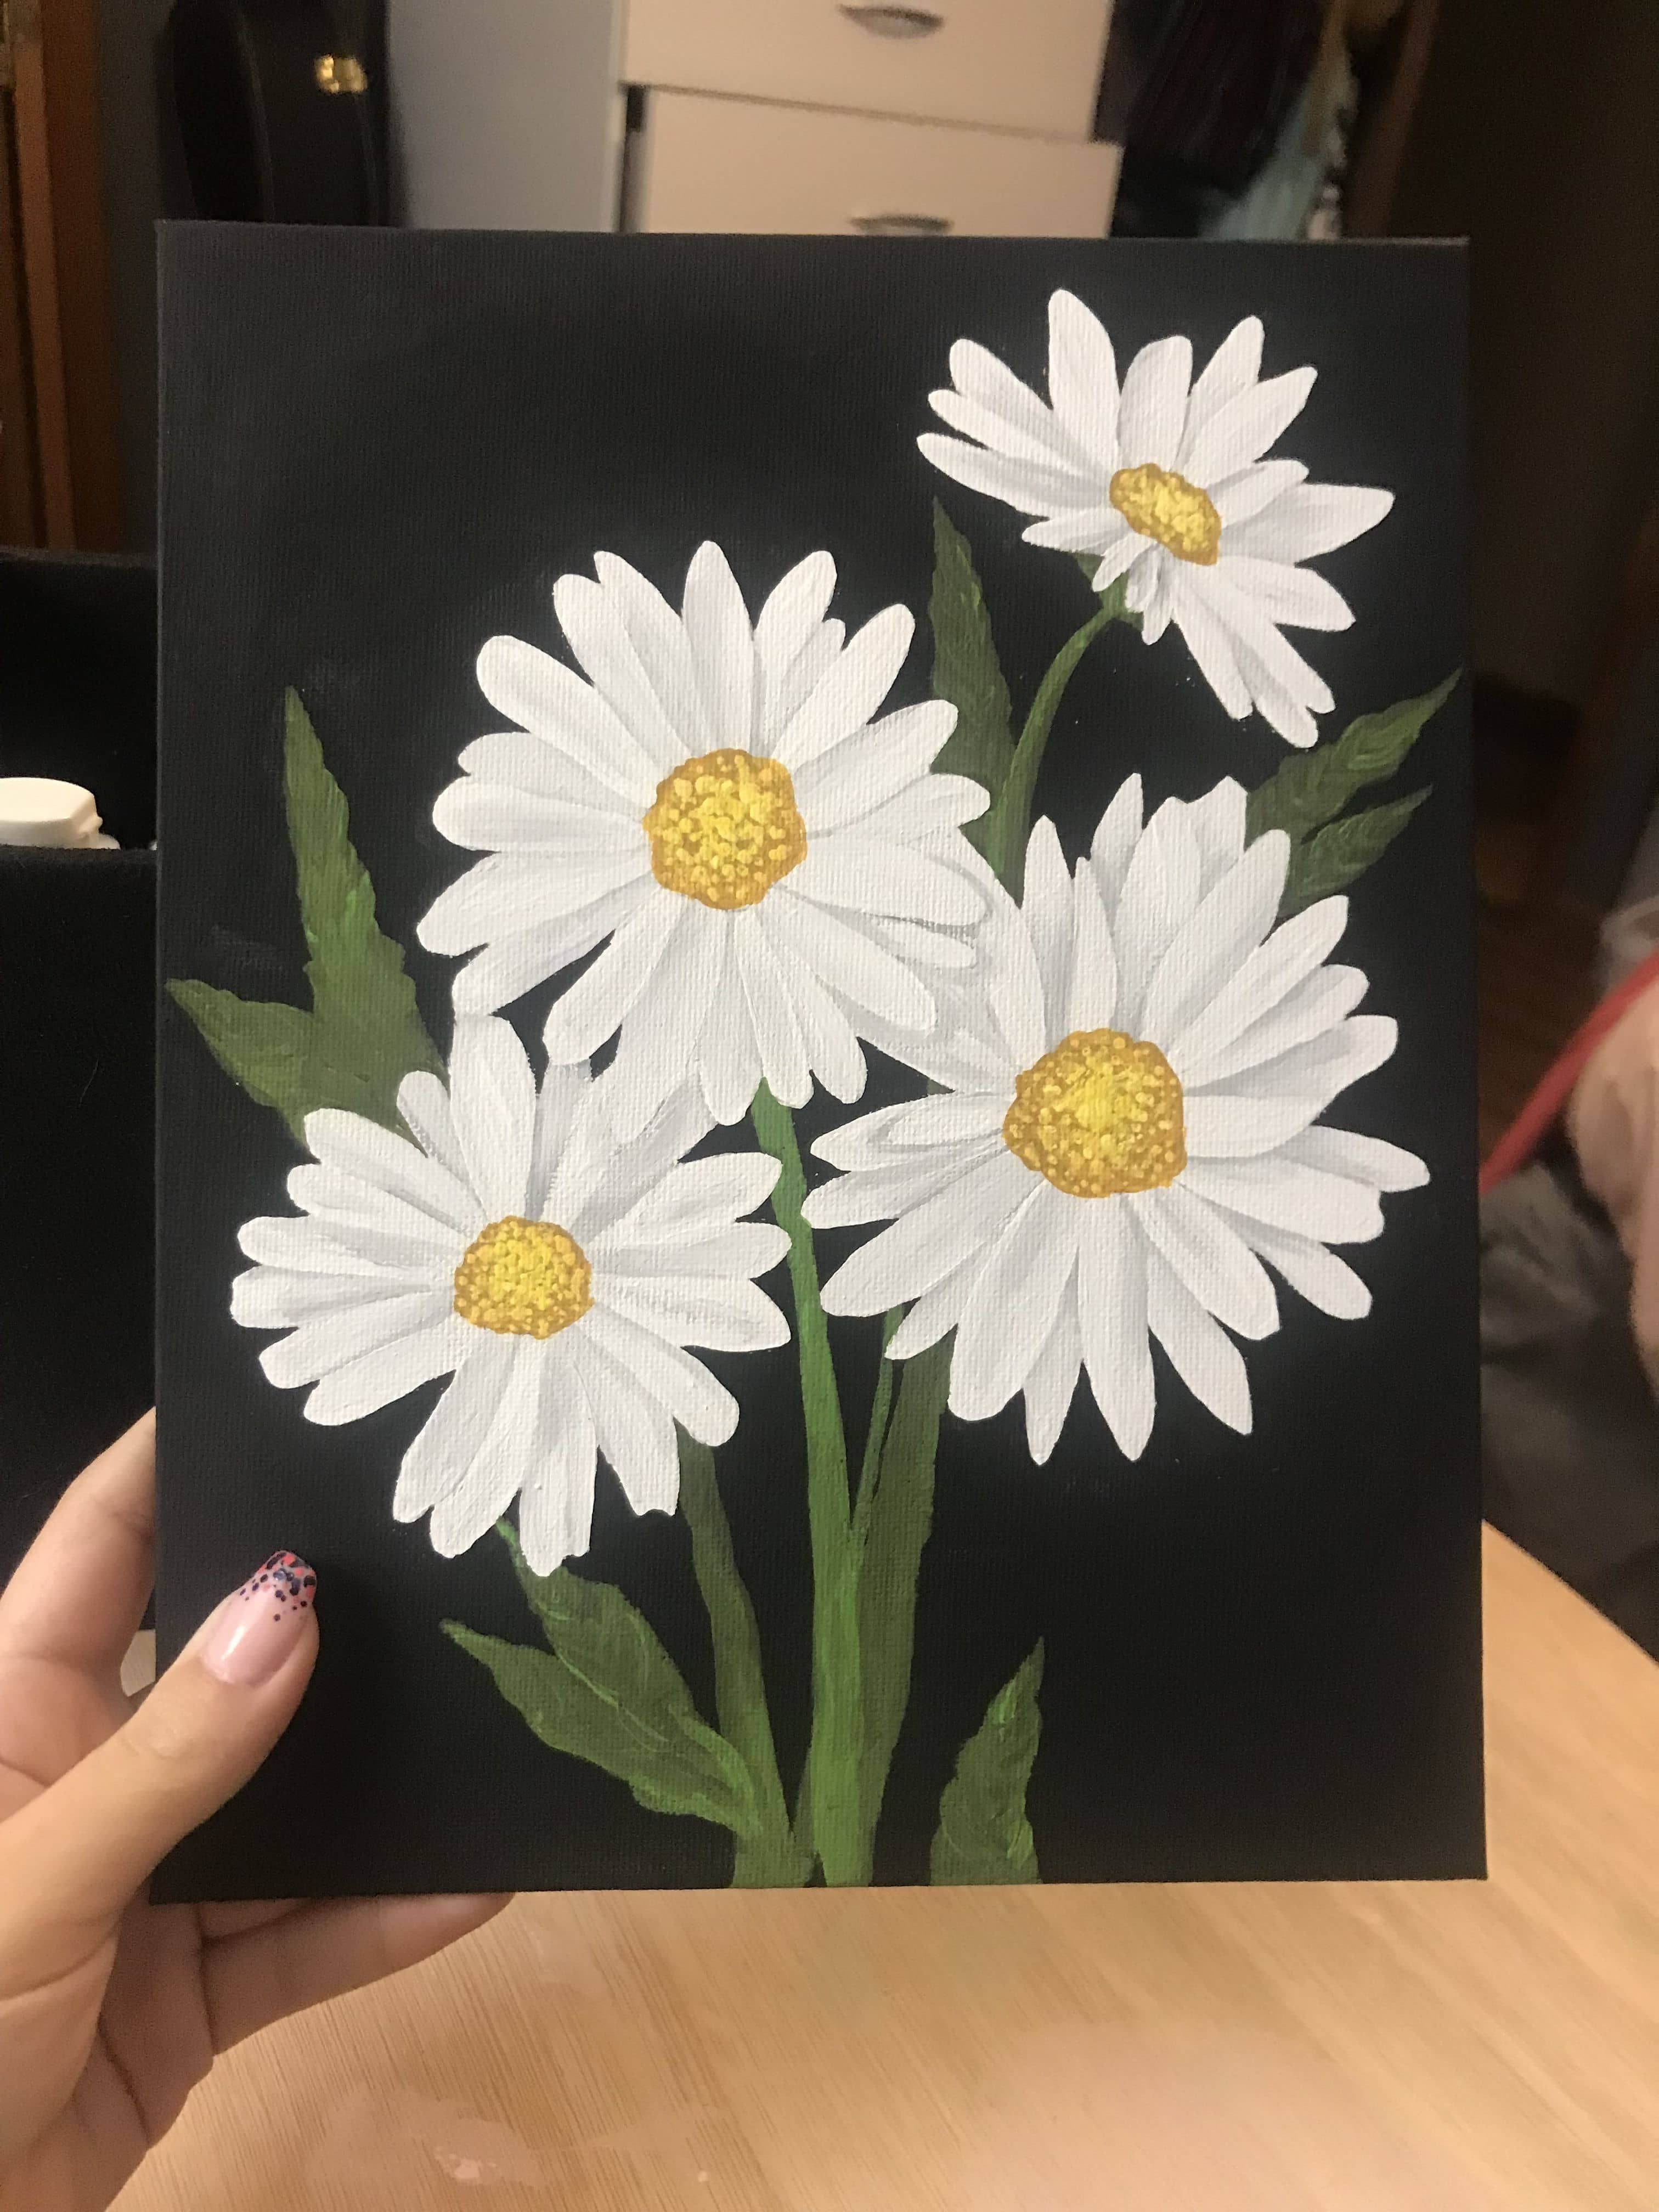 30 Summer Acrylic Painting Ideas For Beginners In 2020 Flower Art Painting Daisy Painting Small Canvas Paintings